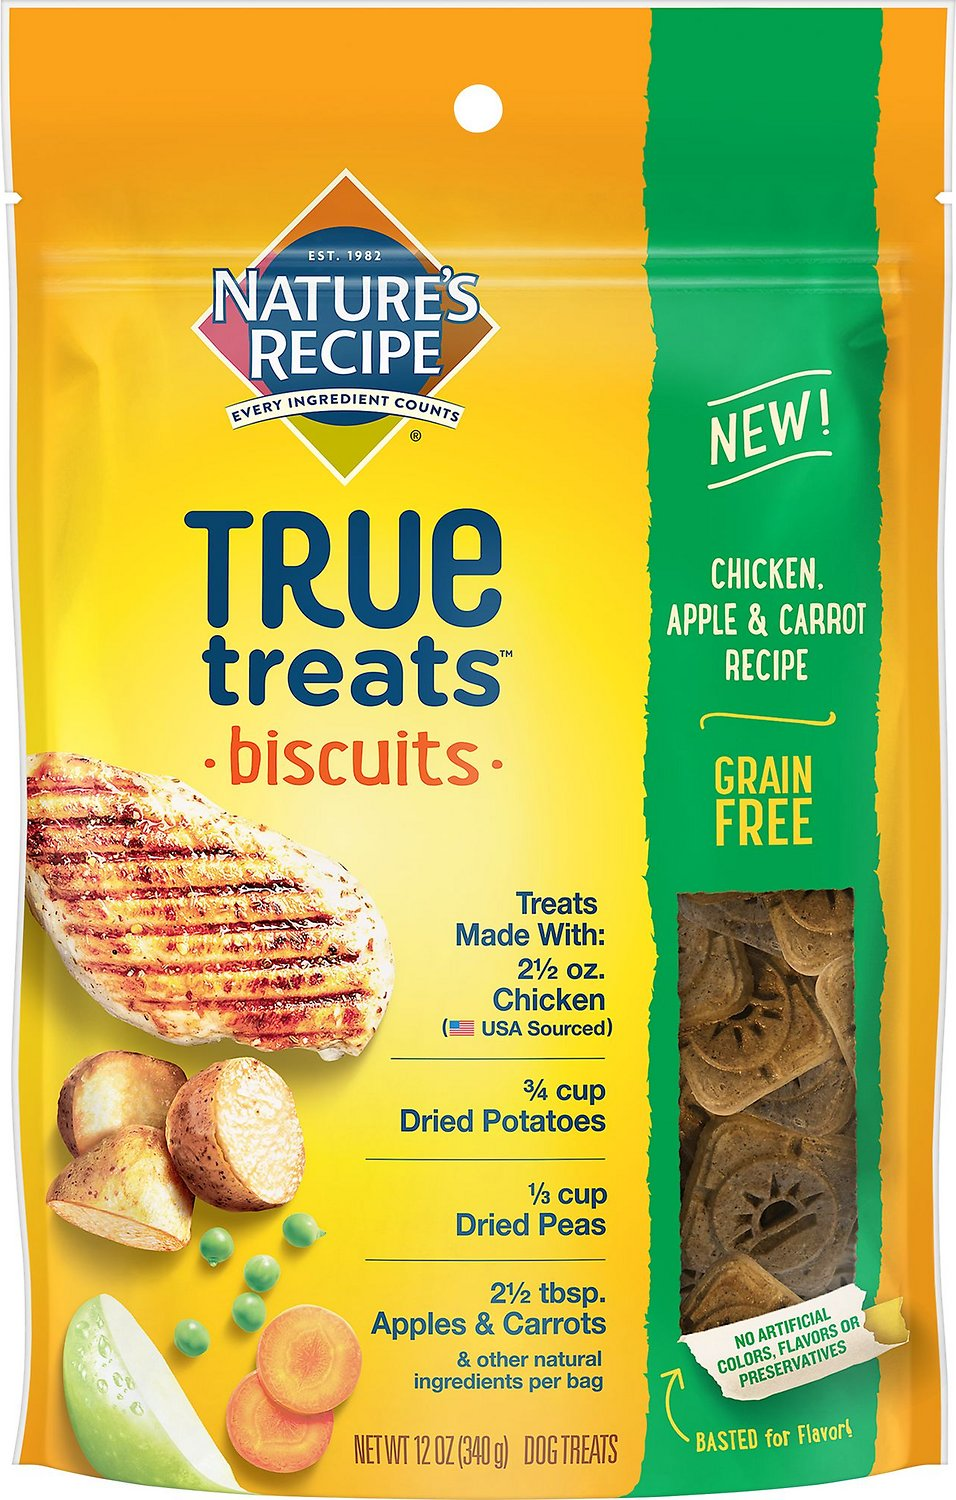 Nature's Recipe True Treats Biscuits Chicken, Apple, and Carrot Recipe Grain-Free Dog Treats